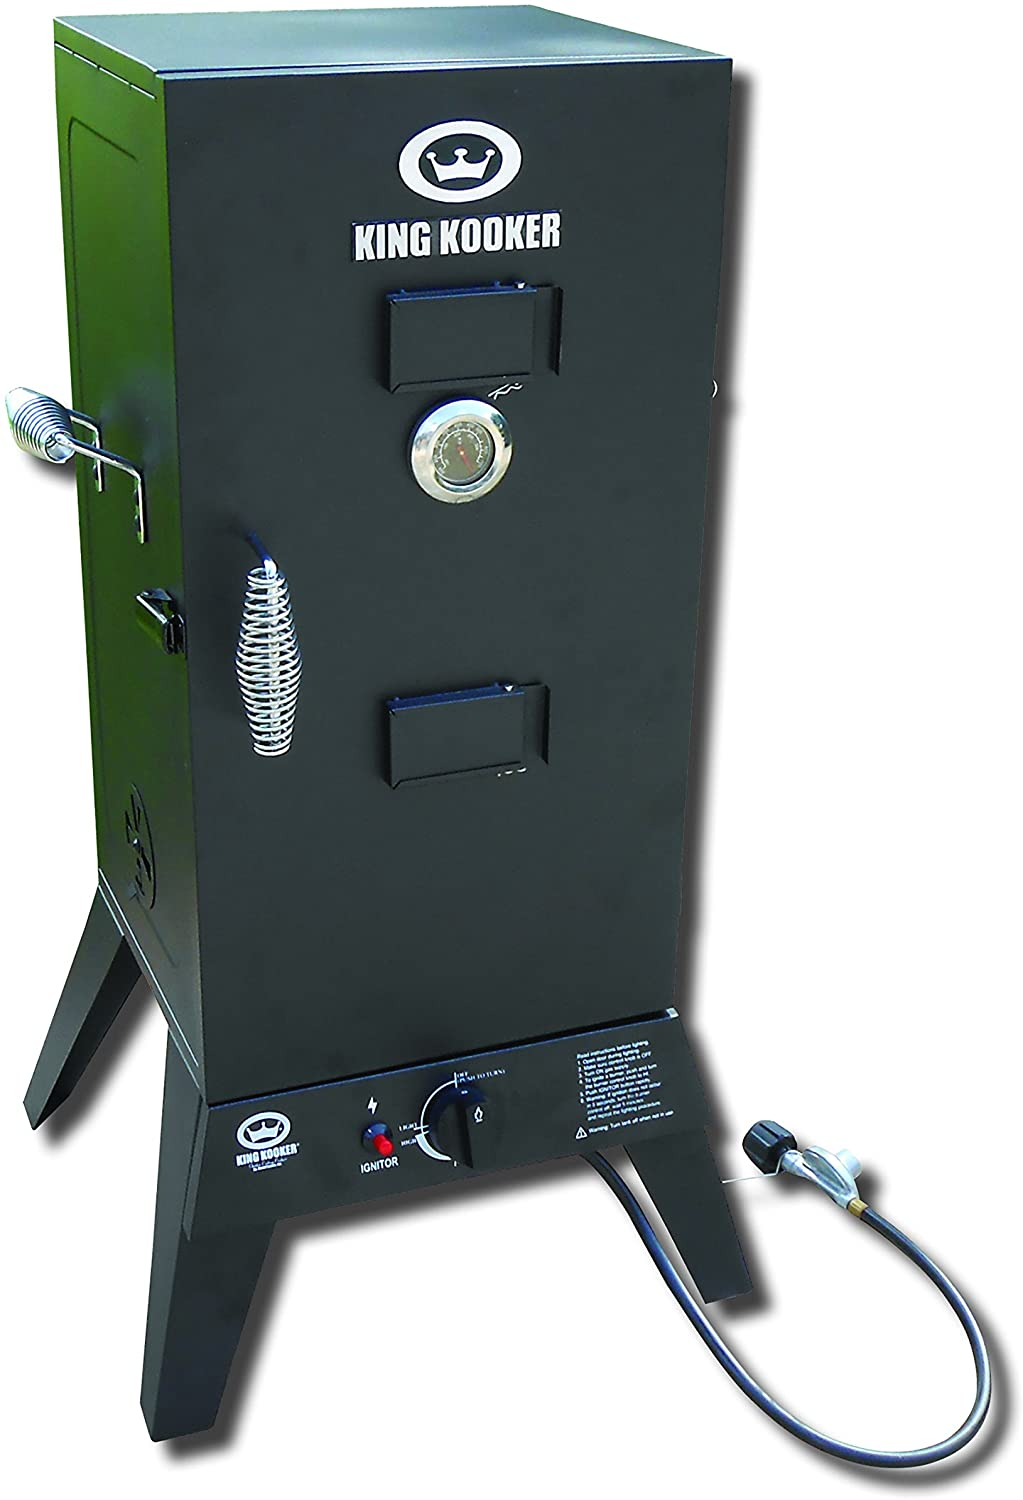 King Kooker 4010060 2113-Low Pressure Smoker with 30 Cabinet, One Size, Multicolor